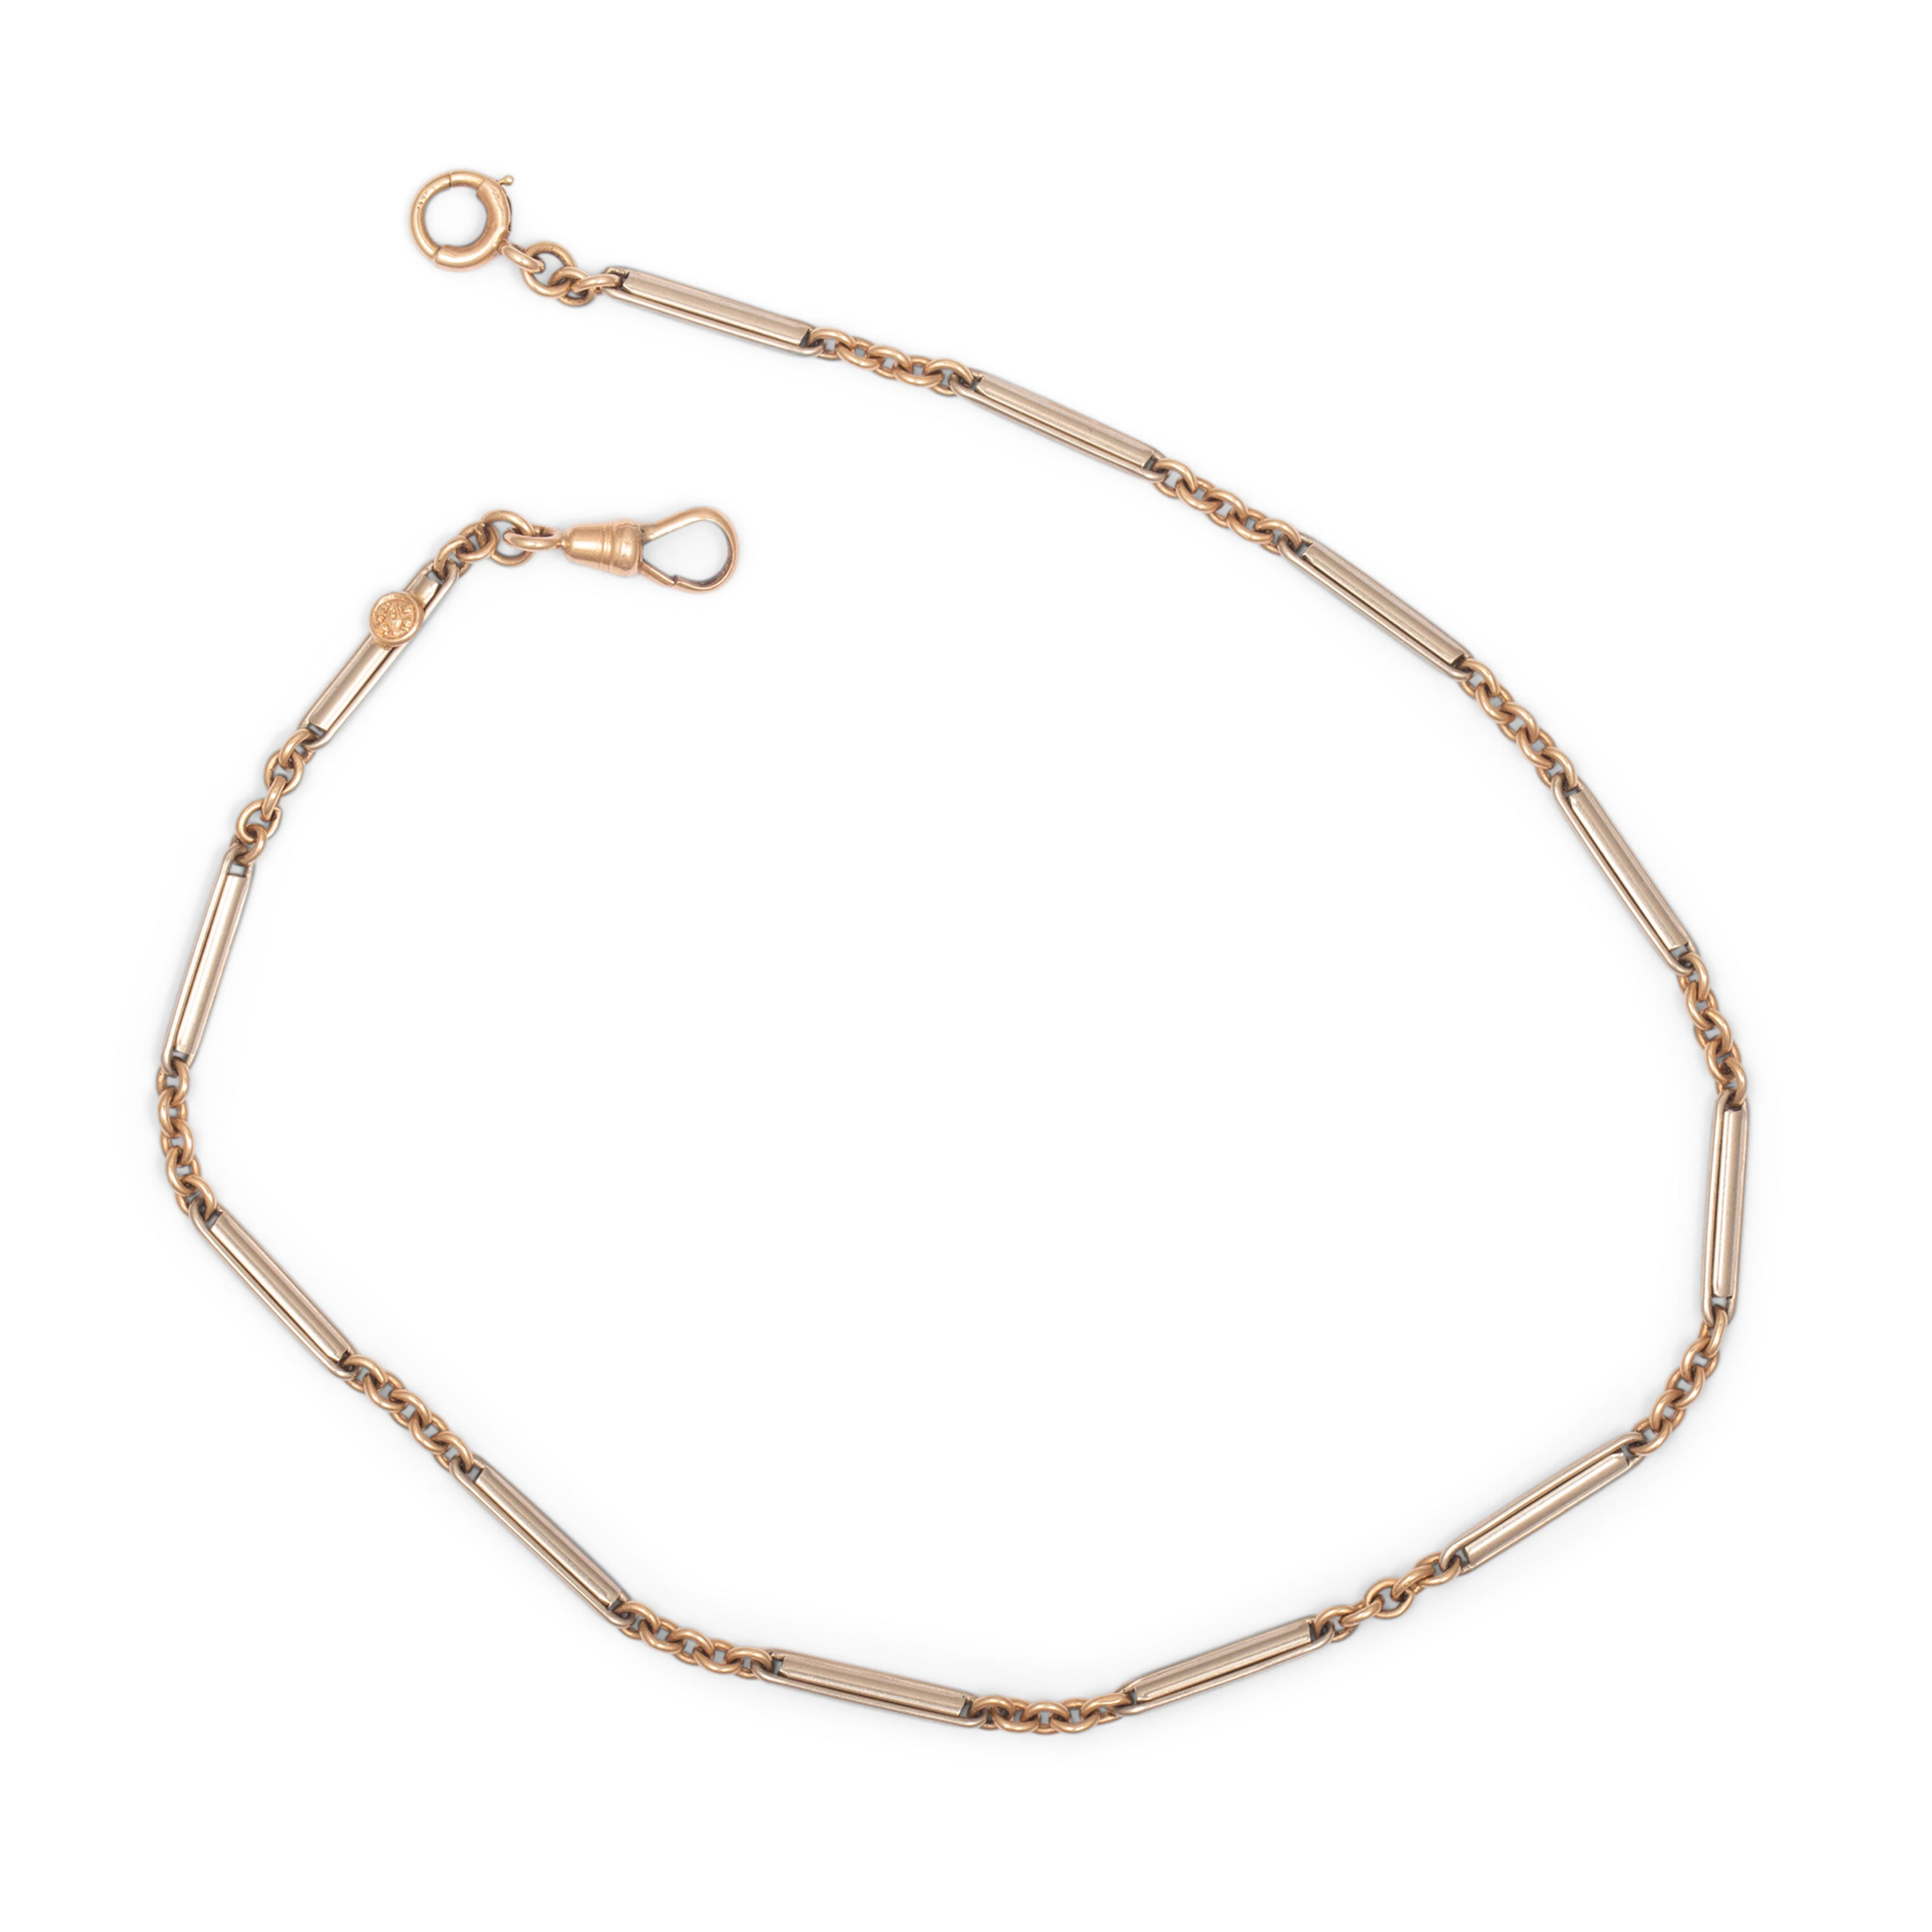 Edwardian Choker Chain 14k Rose And White Gold Necklace